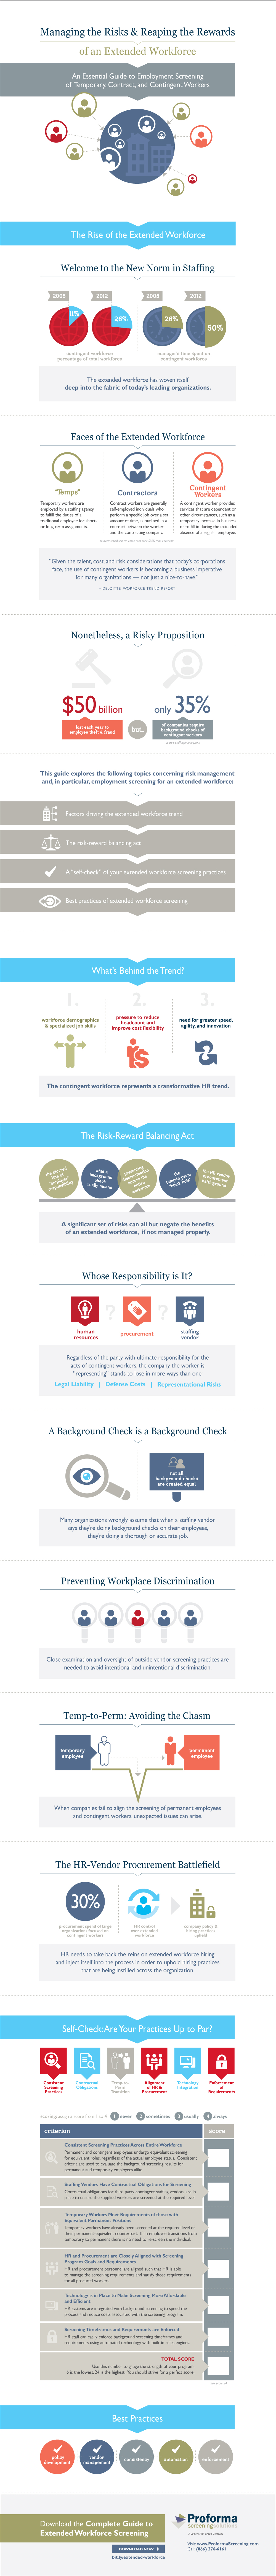 Managing the Risks of an Extended Workforce - Infographic